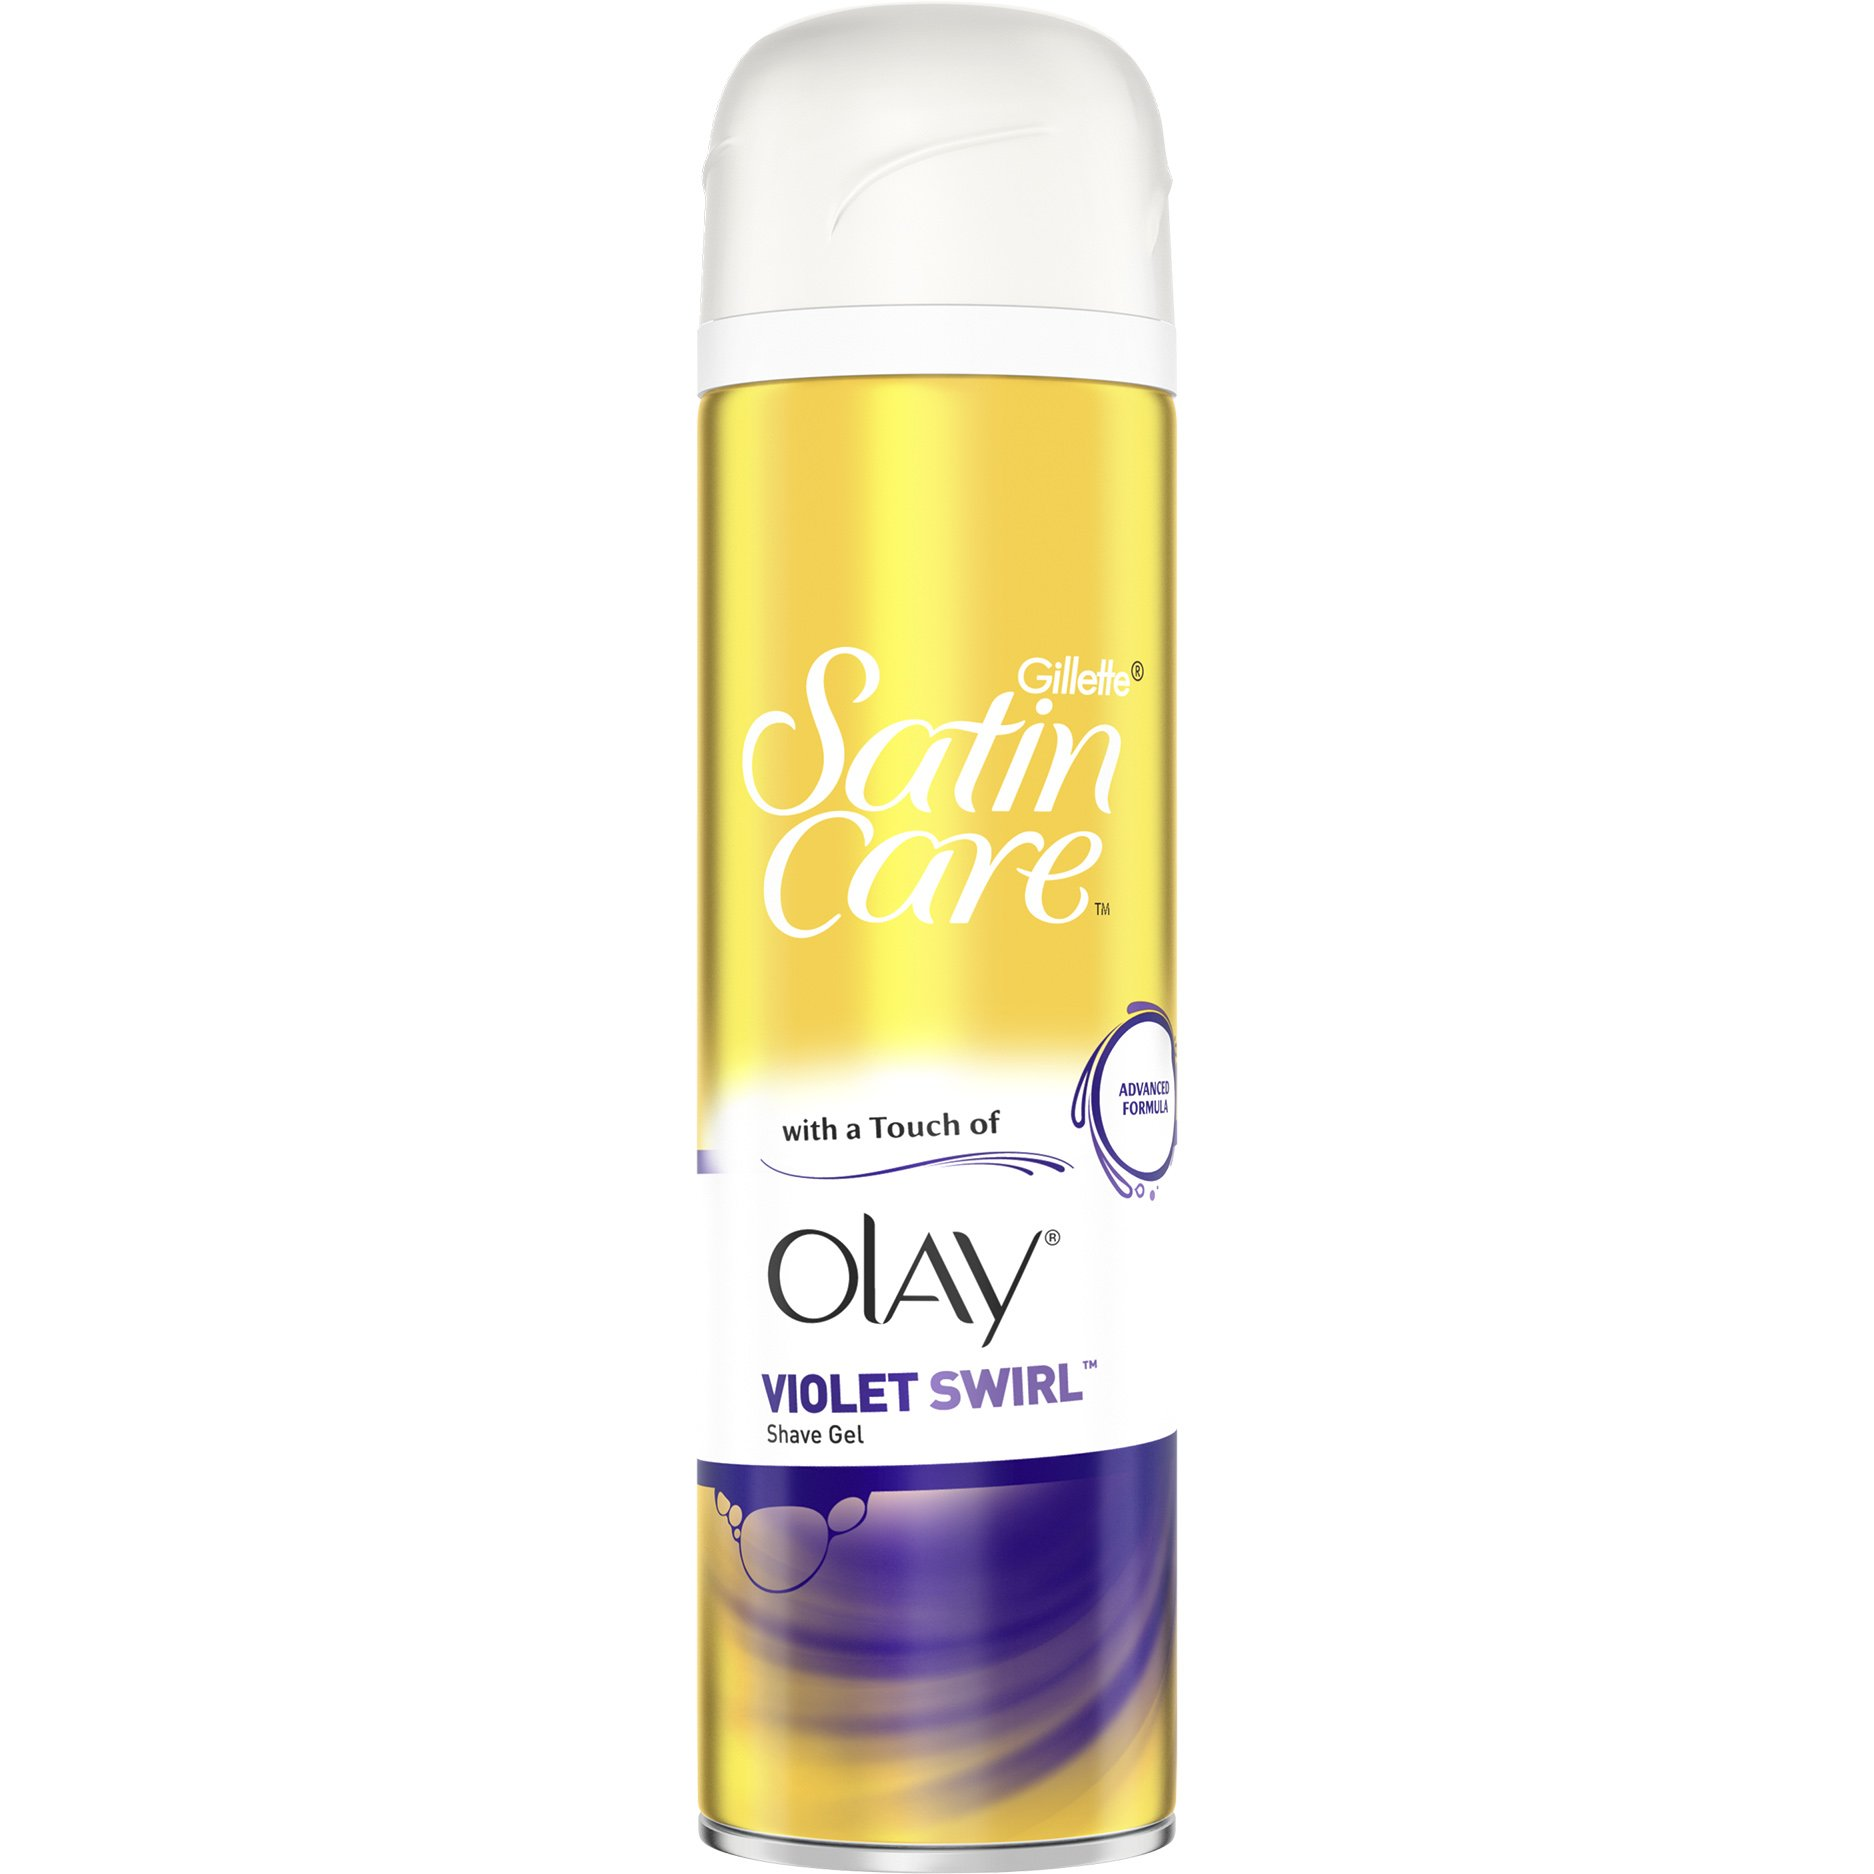 pharm24 Gillette Satin Care Gel Ξυρίσματος Violet Swirl With a Touch of  Olay για Άψογο Ξύρισμα 200ml 554098f83d0